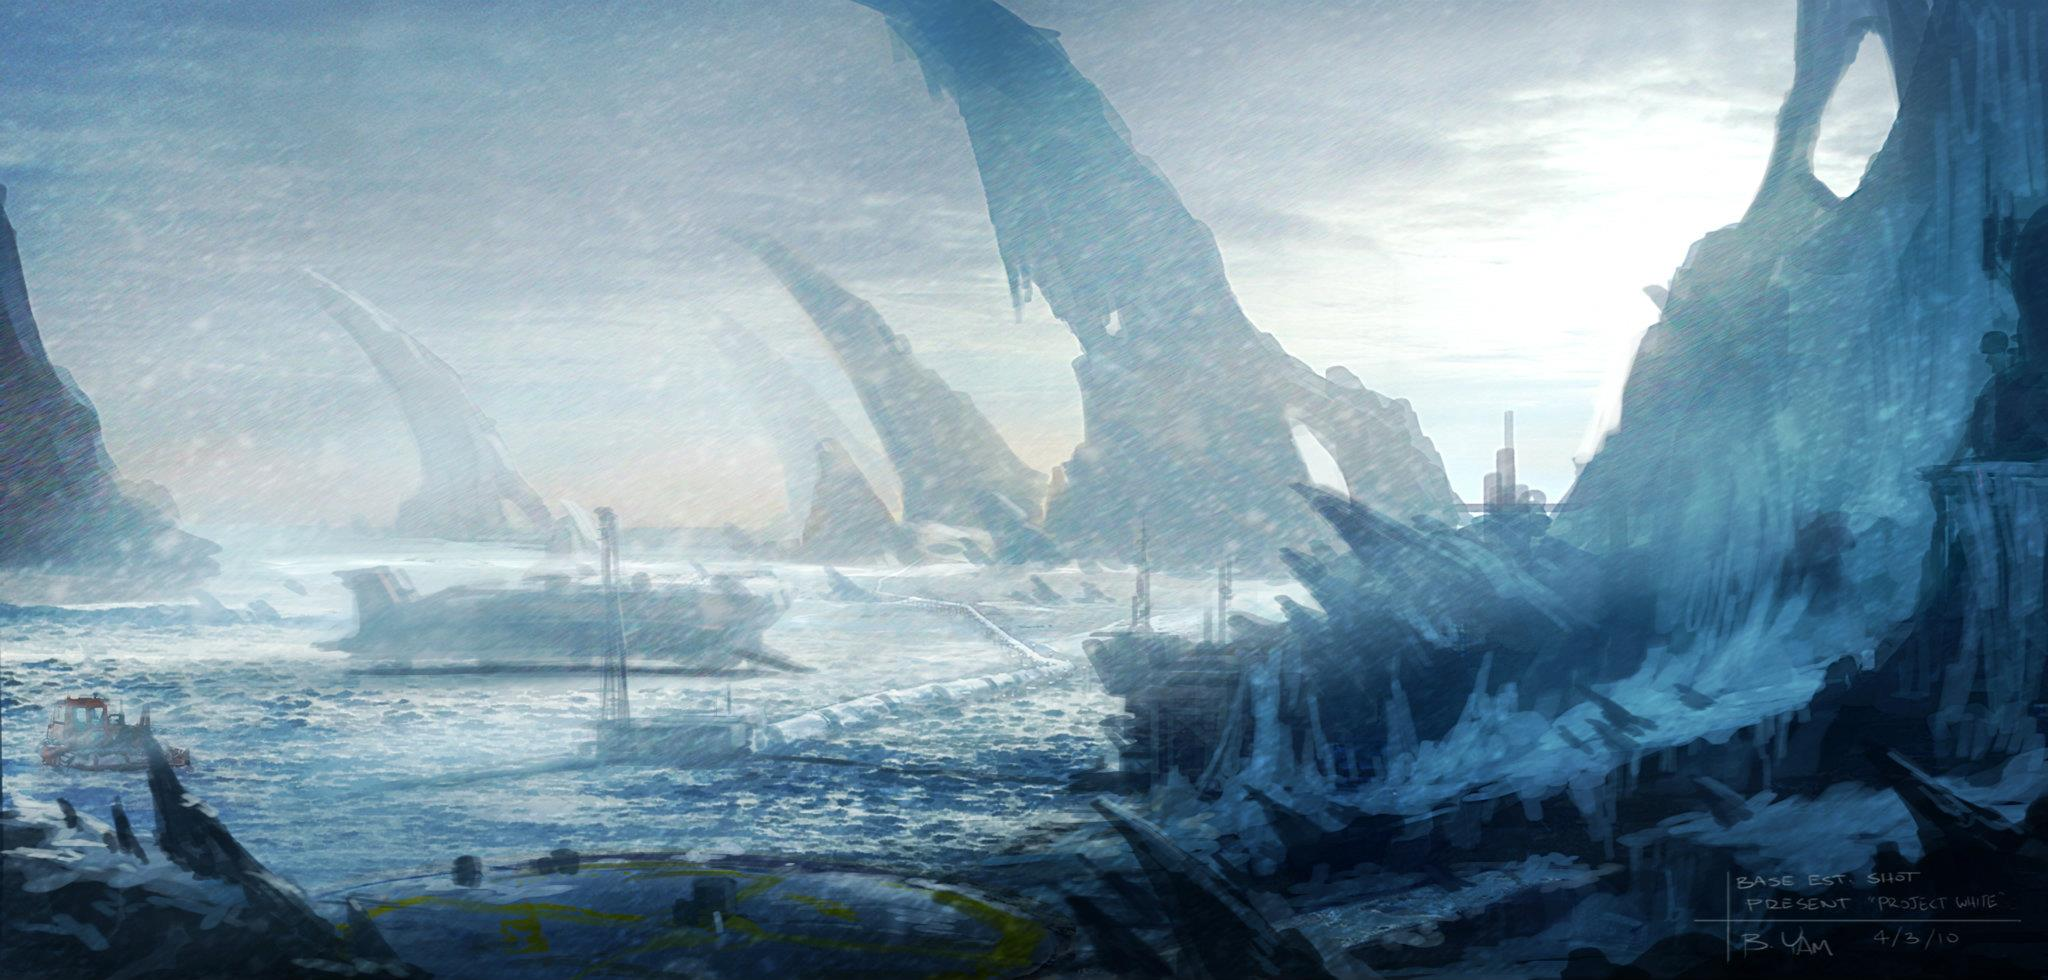 image - lp 3 environment concept art 01 jpg - the lost planet wiki